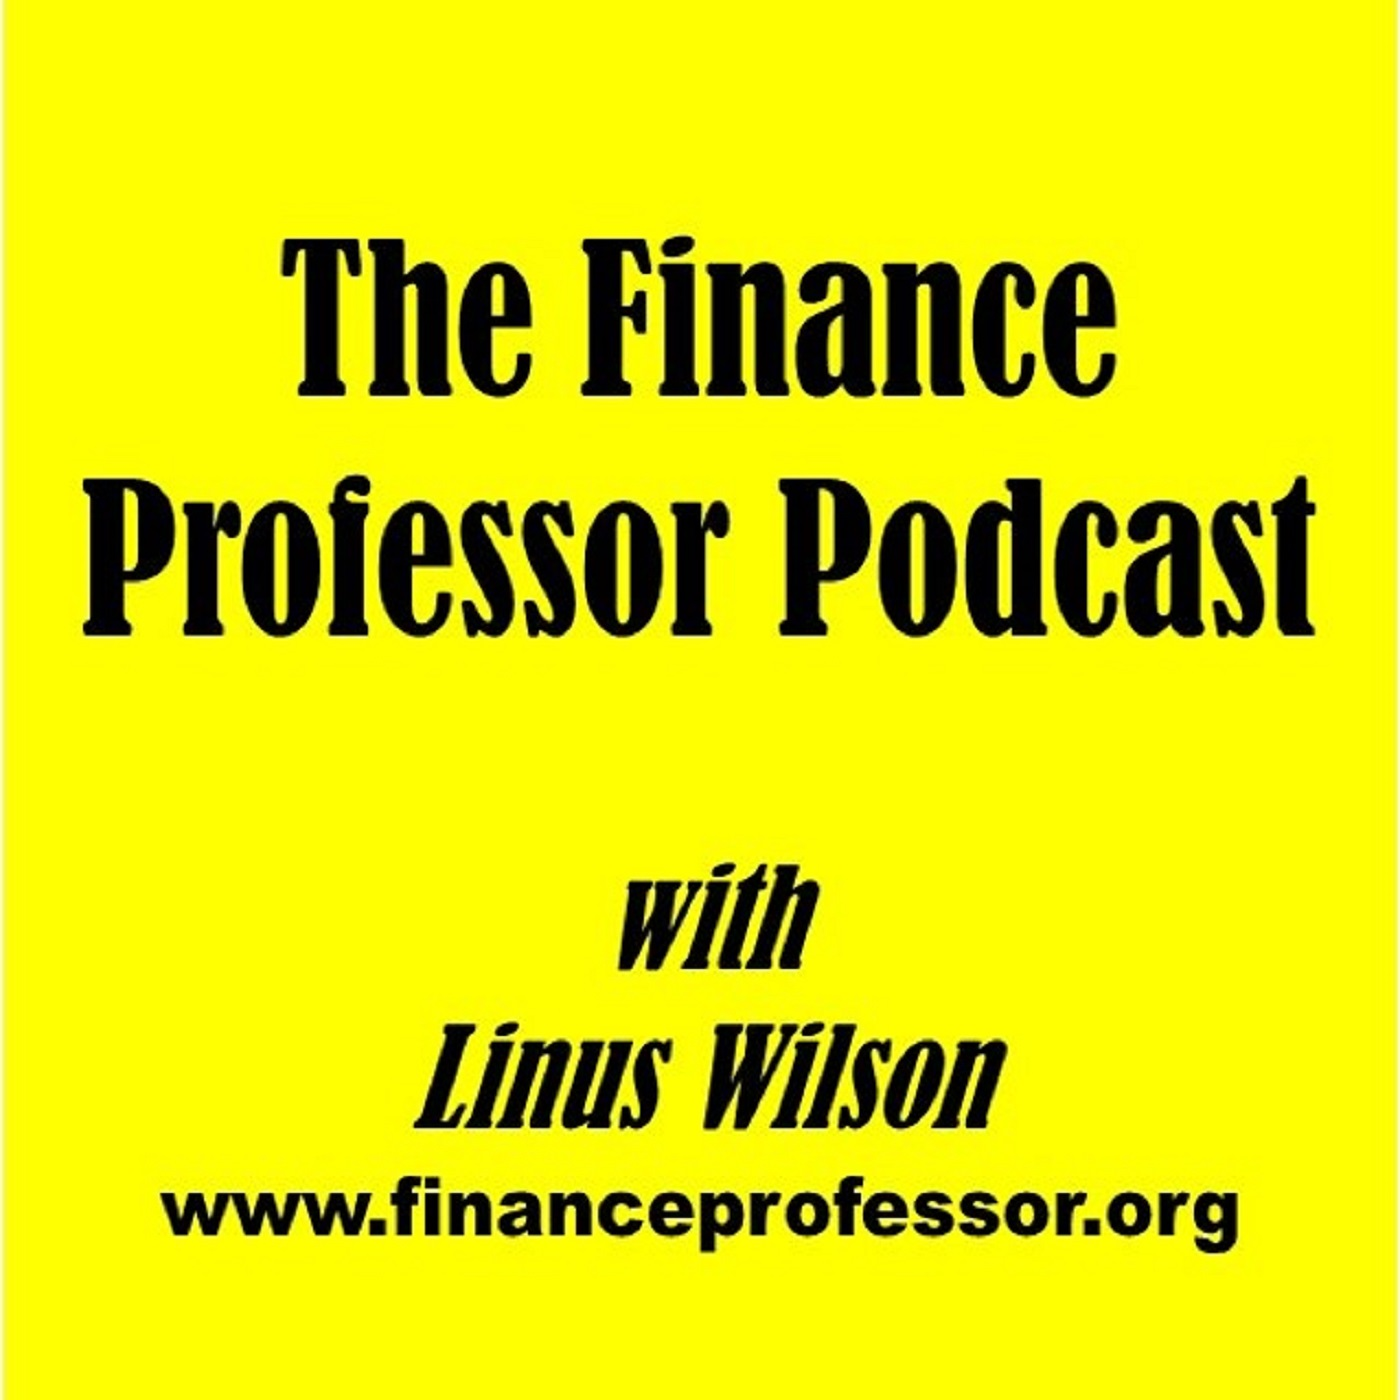 The Finance Professor Podcast